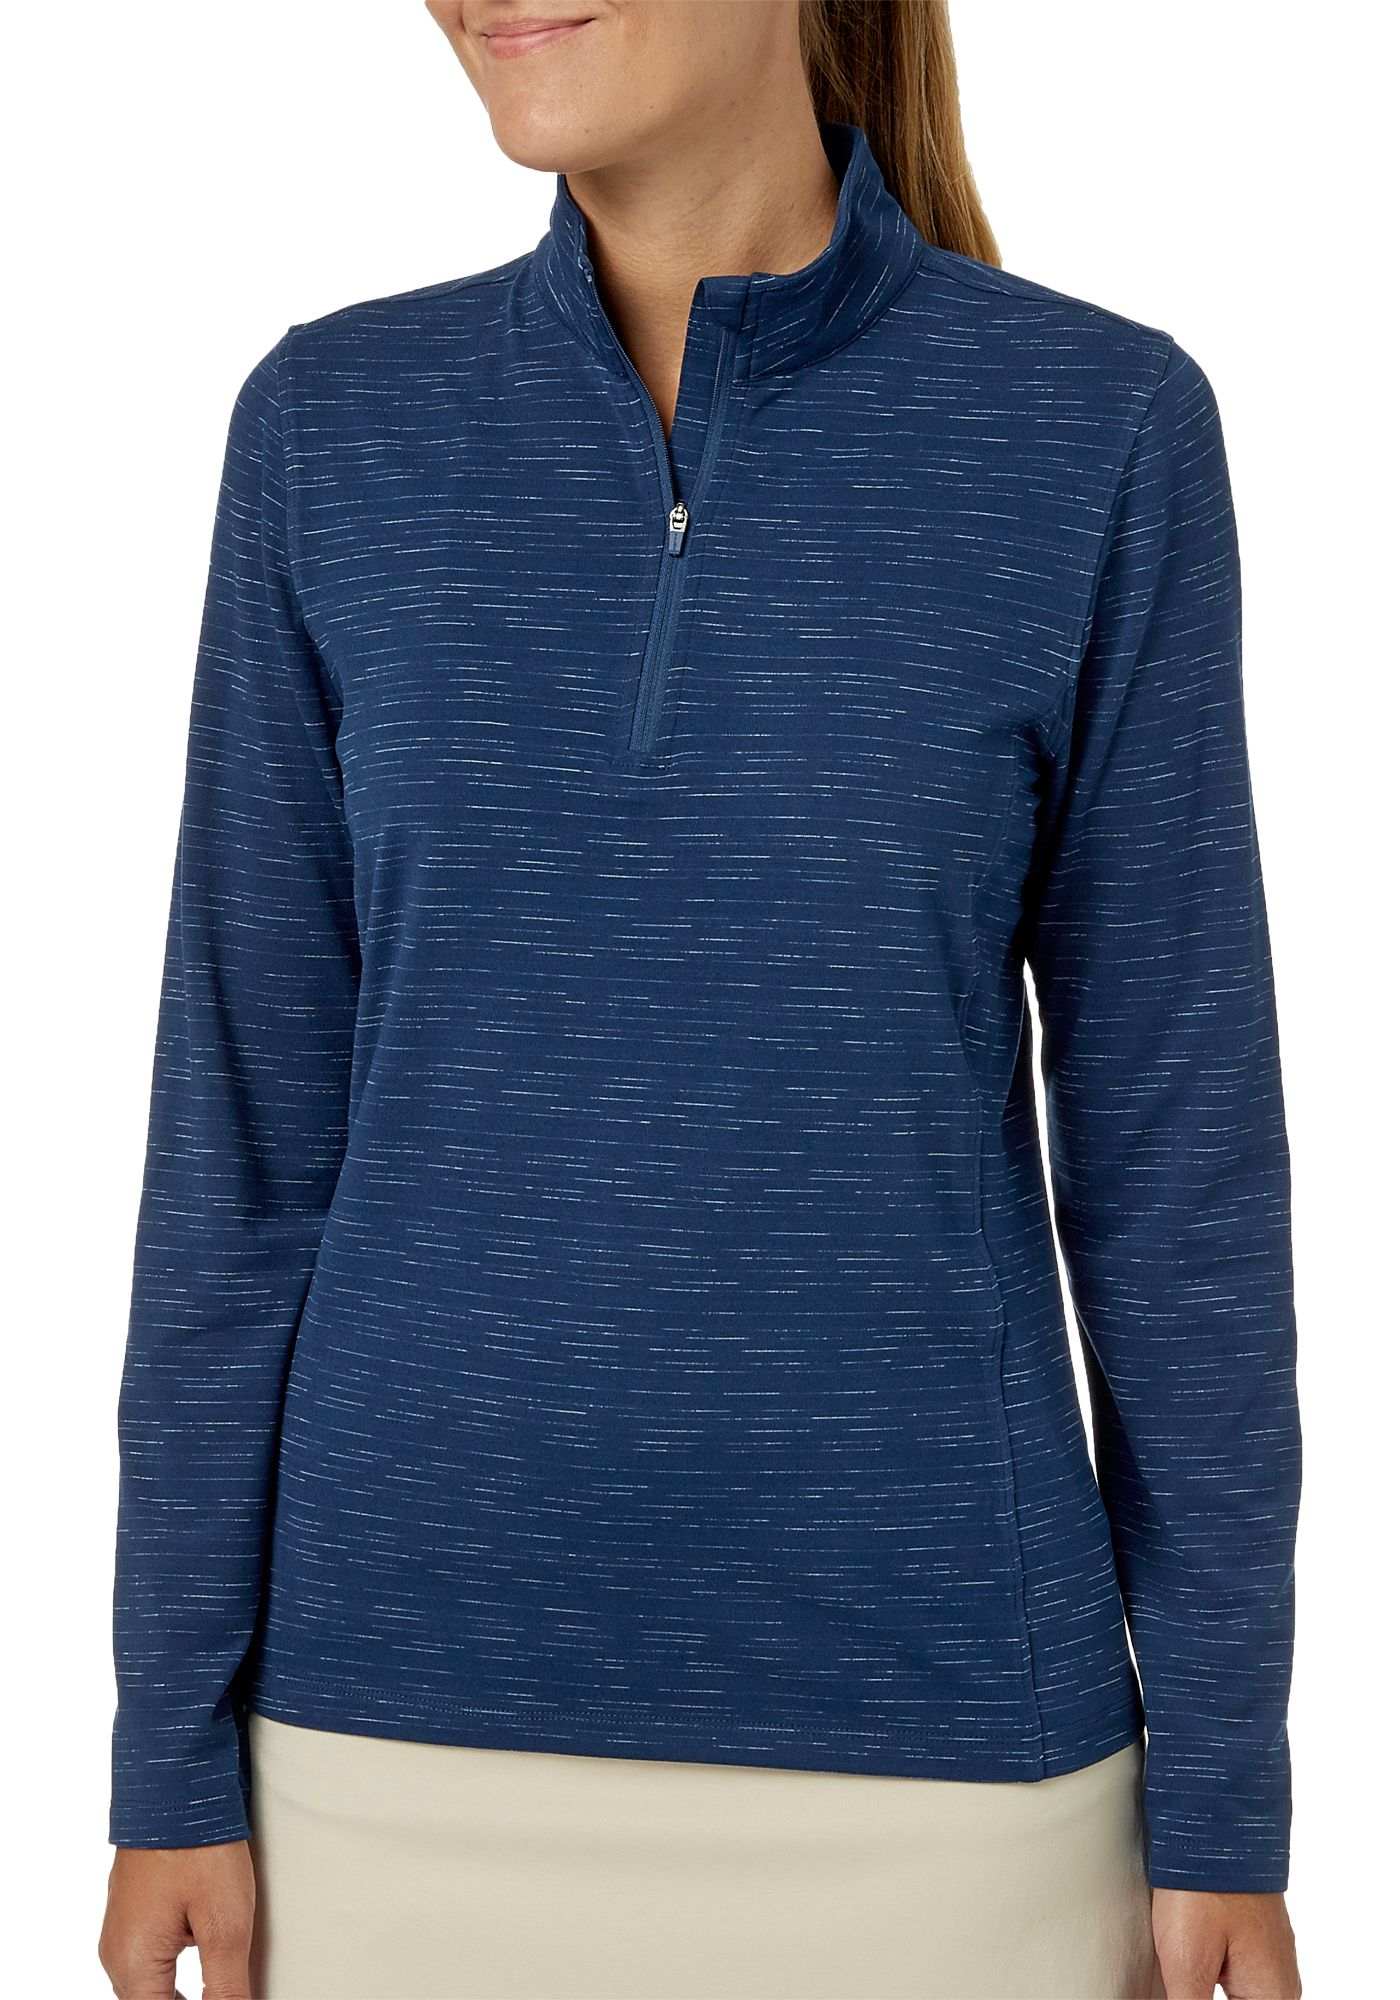 Lady Hagen Women's Space Dye Quarter-Zip